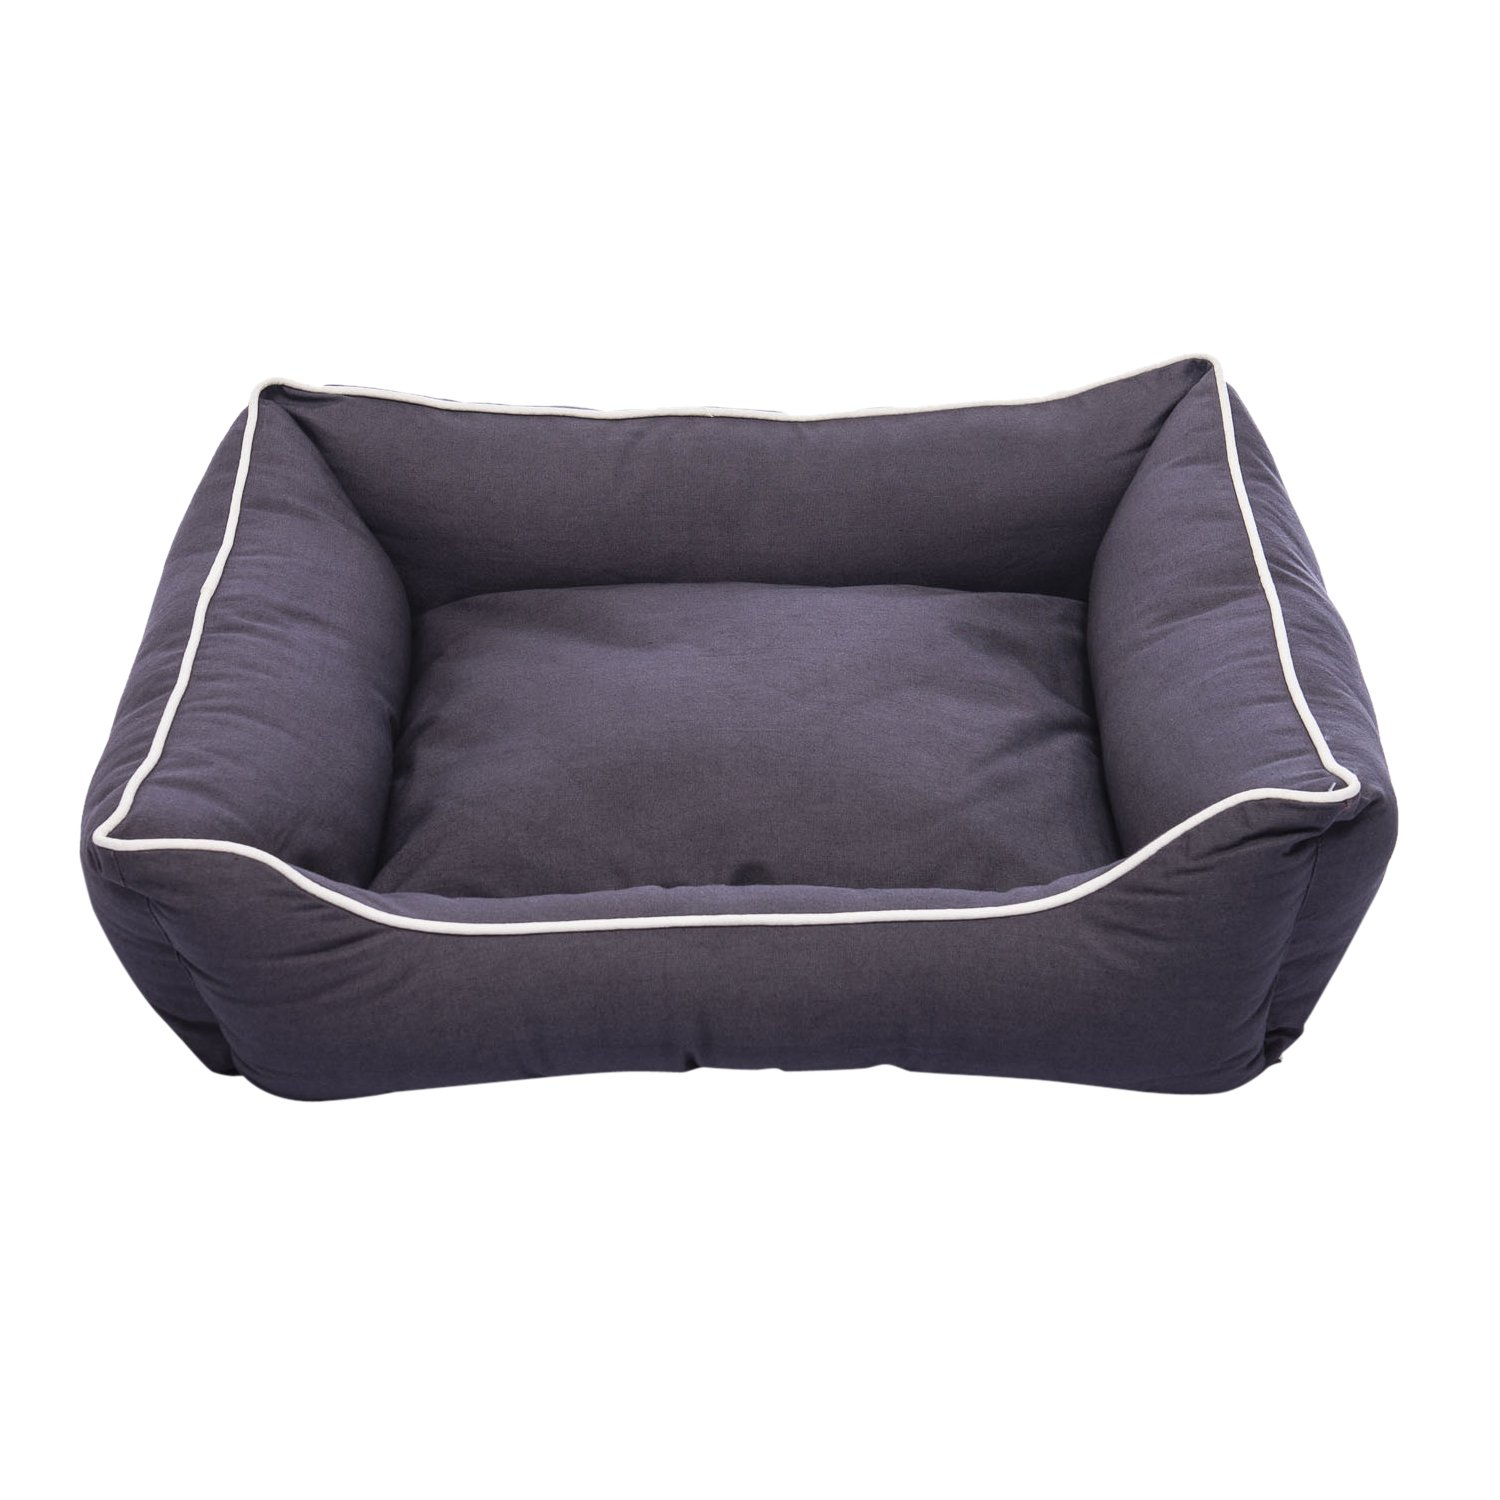 Dog Gone Smart Repelz-It Lounger Bed